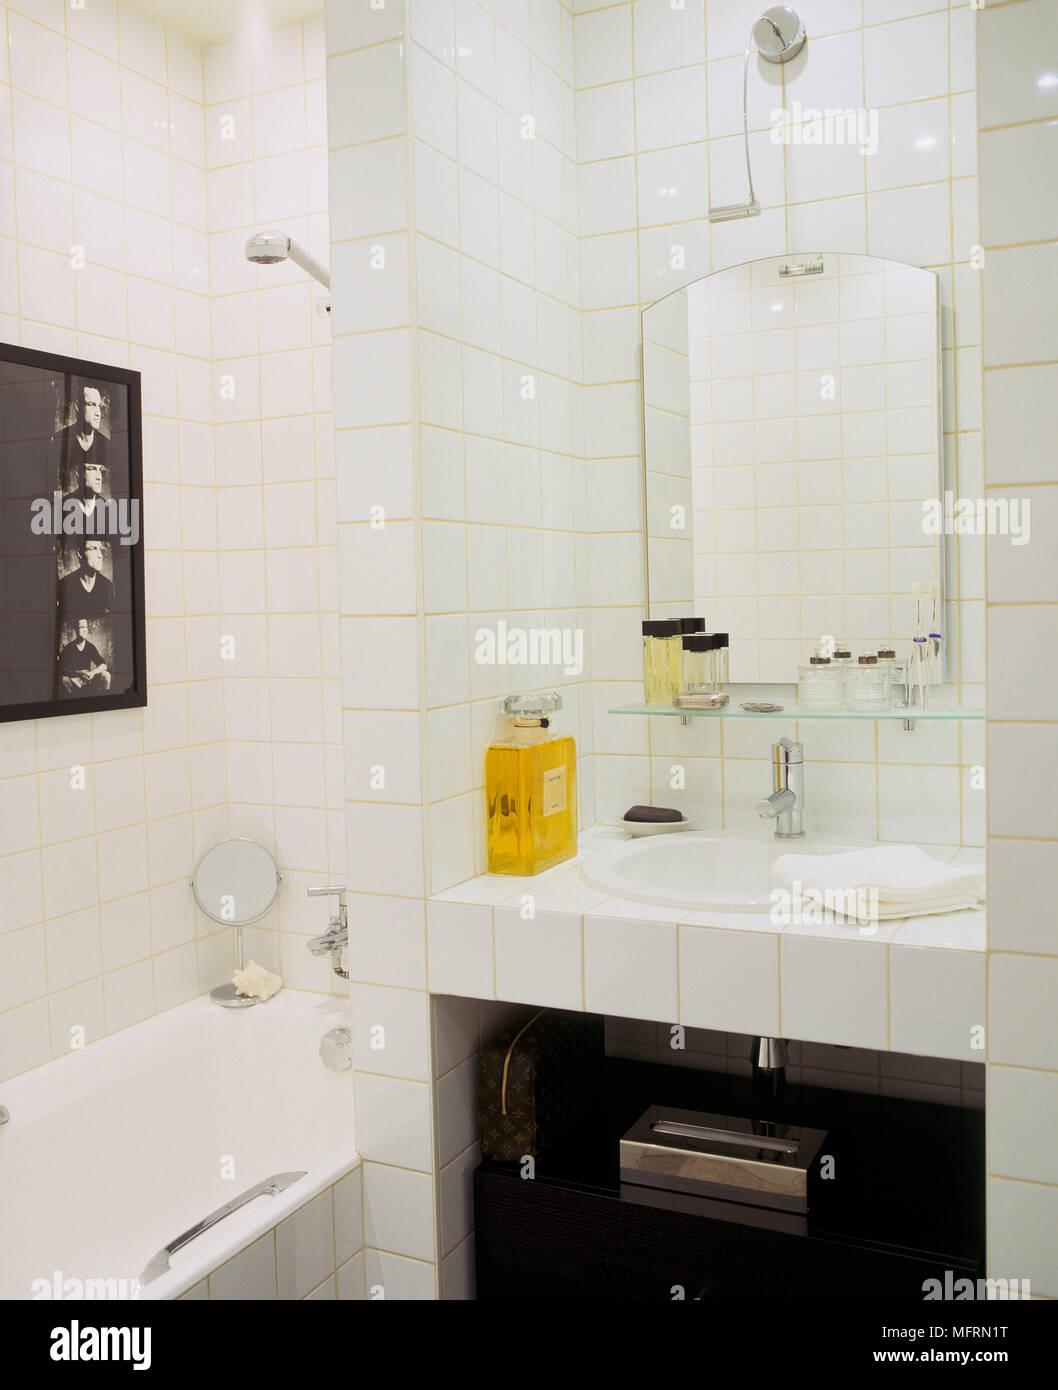 A detail of a modern white bathroom with tiled walls washbasin set ...